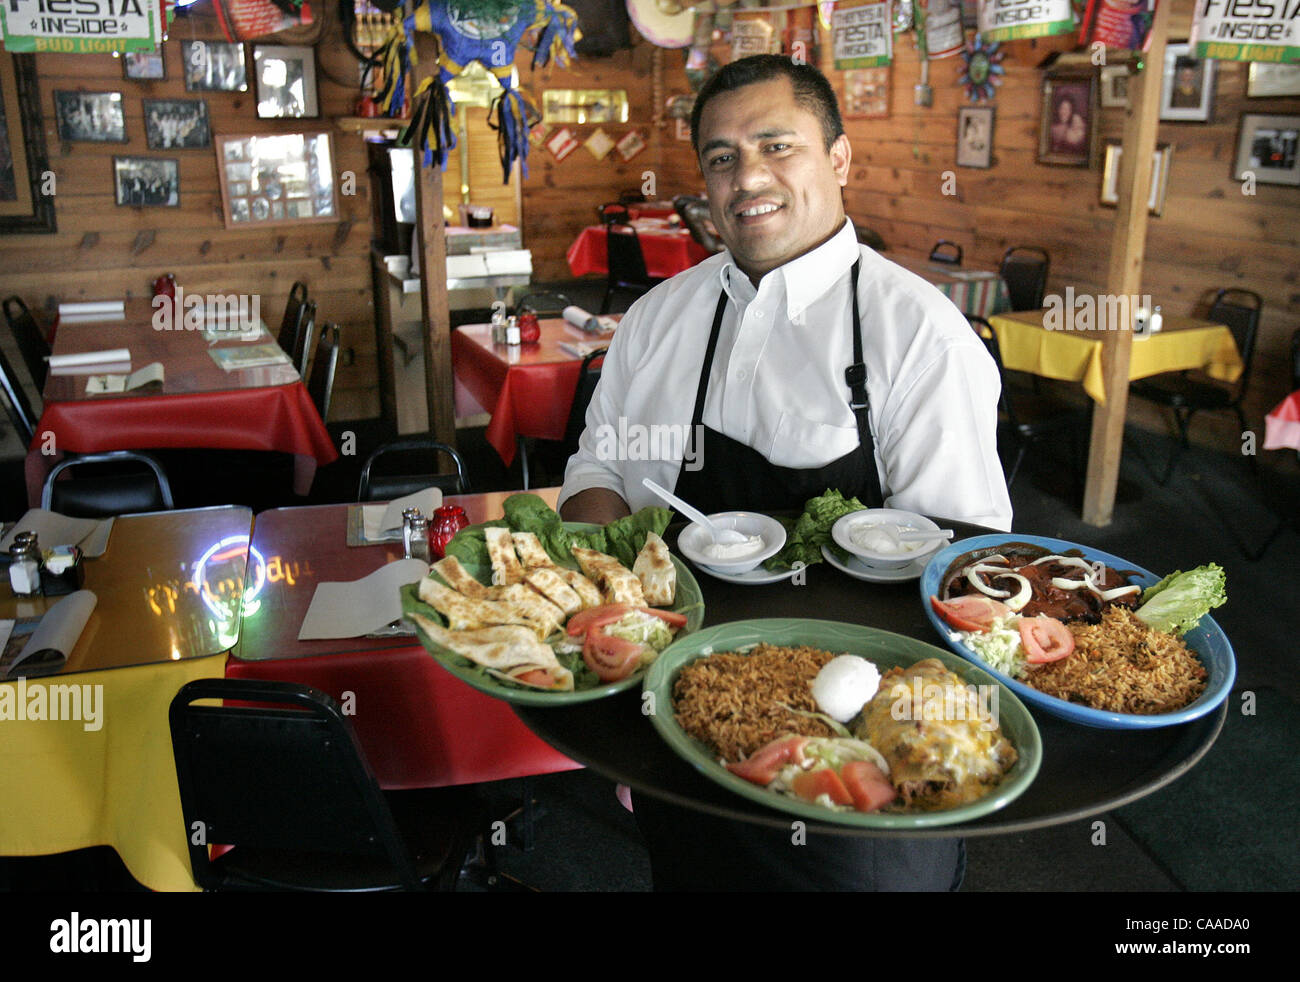 (published 6/2/2005, NIGHT & DAY NC-4) SLgarcia239410x001/May 11---General Manager Jose Payo serves up an assortment - Stock Image